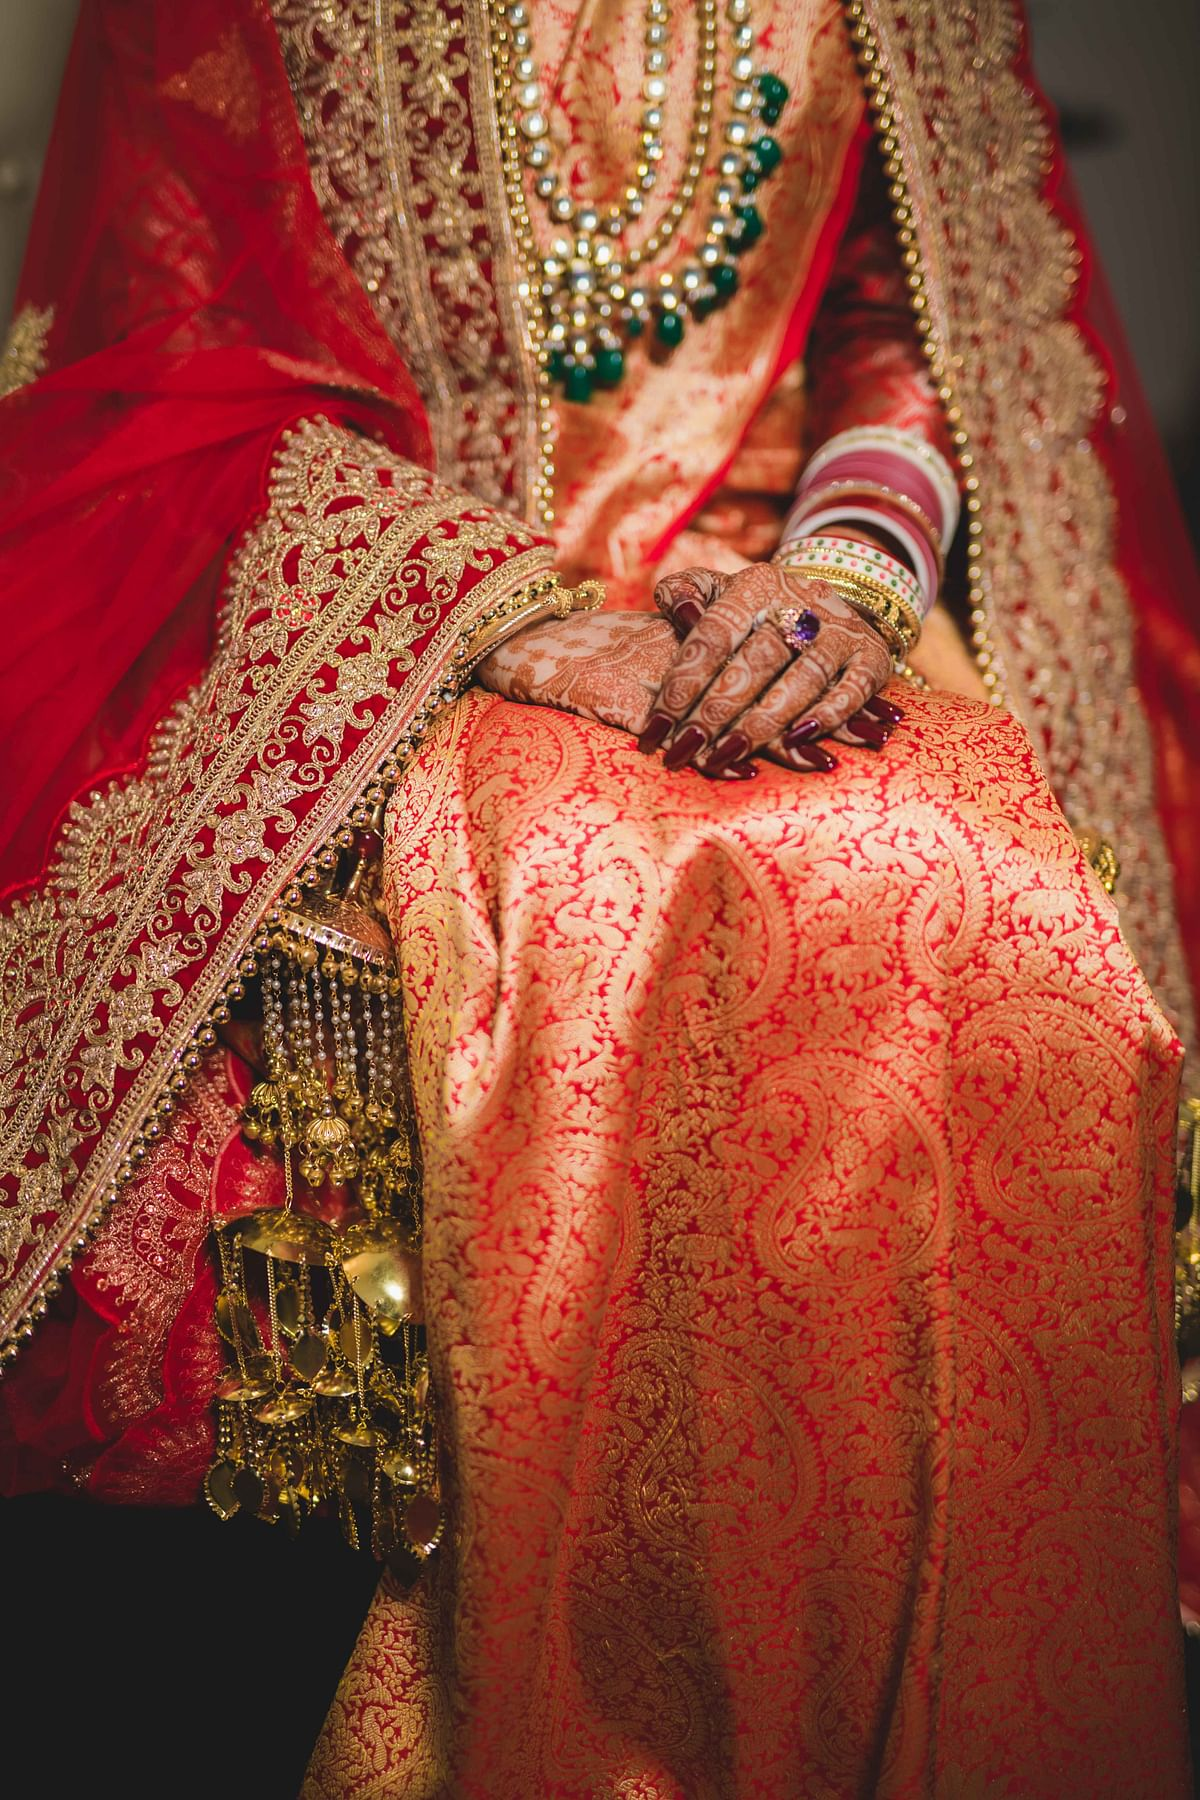 Author's wedding saree, Banarasi with shikargah motifs.